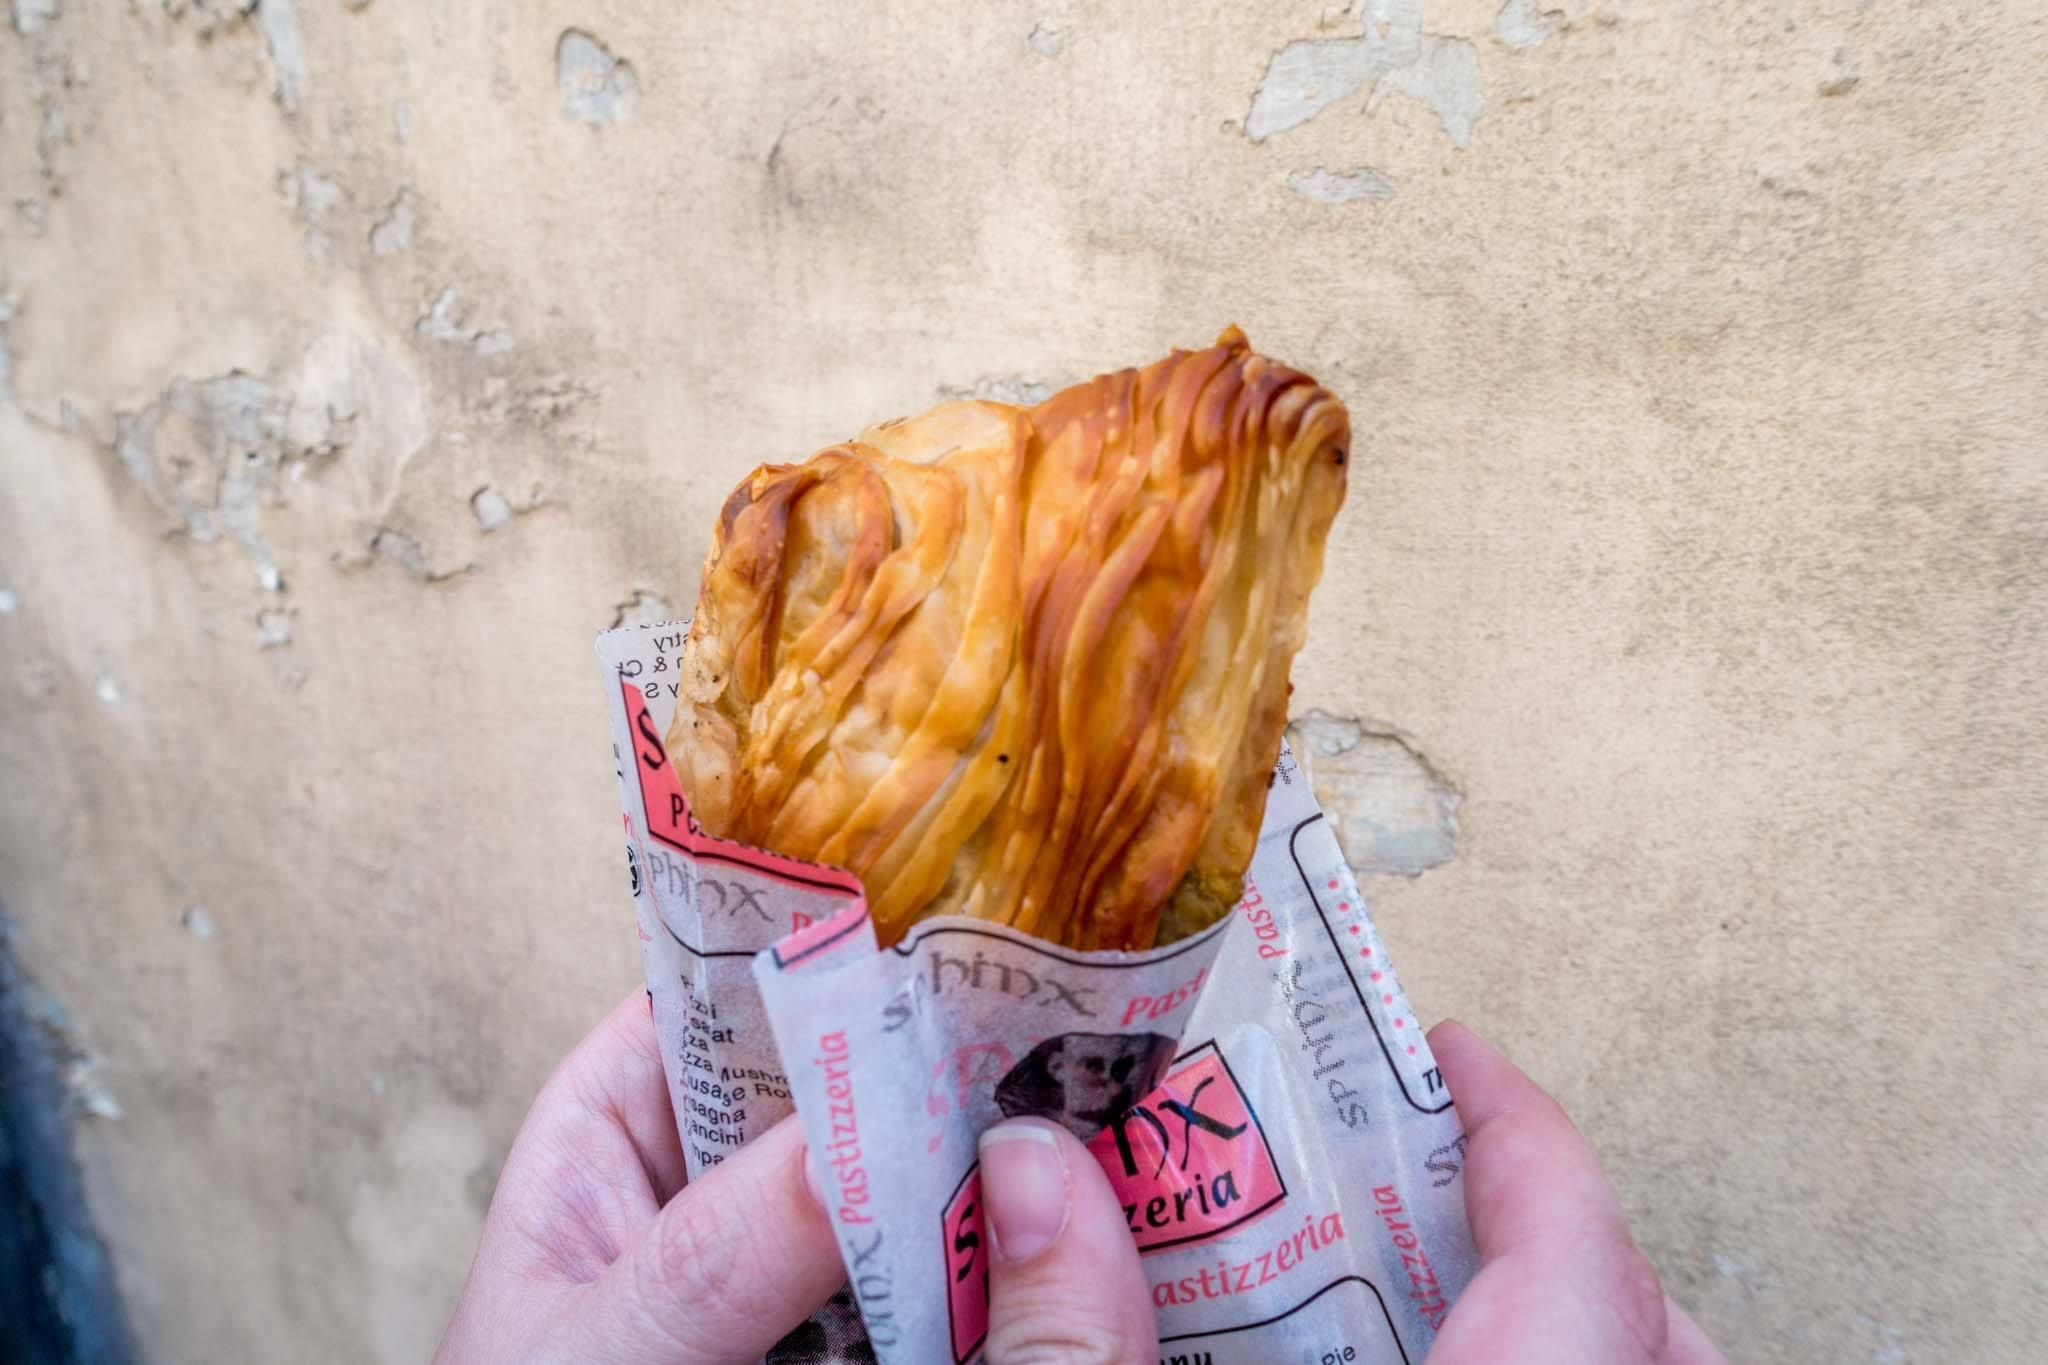 Pastizzi, a pastry filled with peas